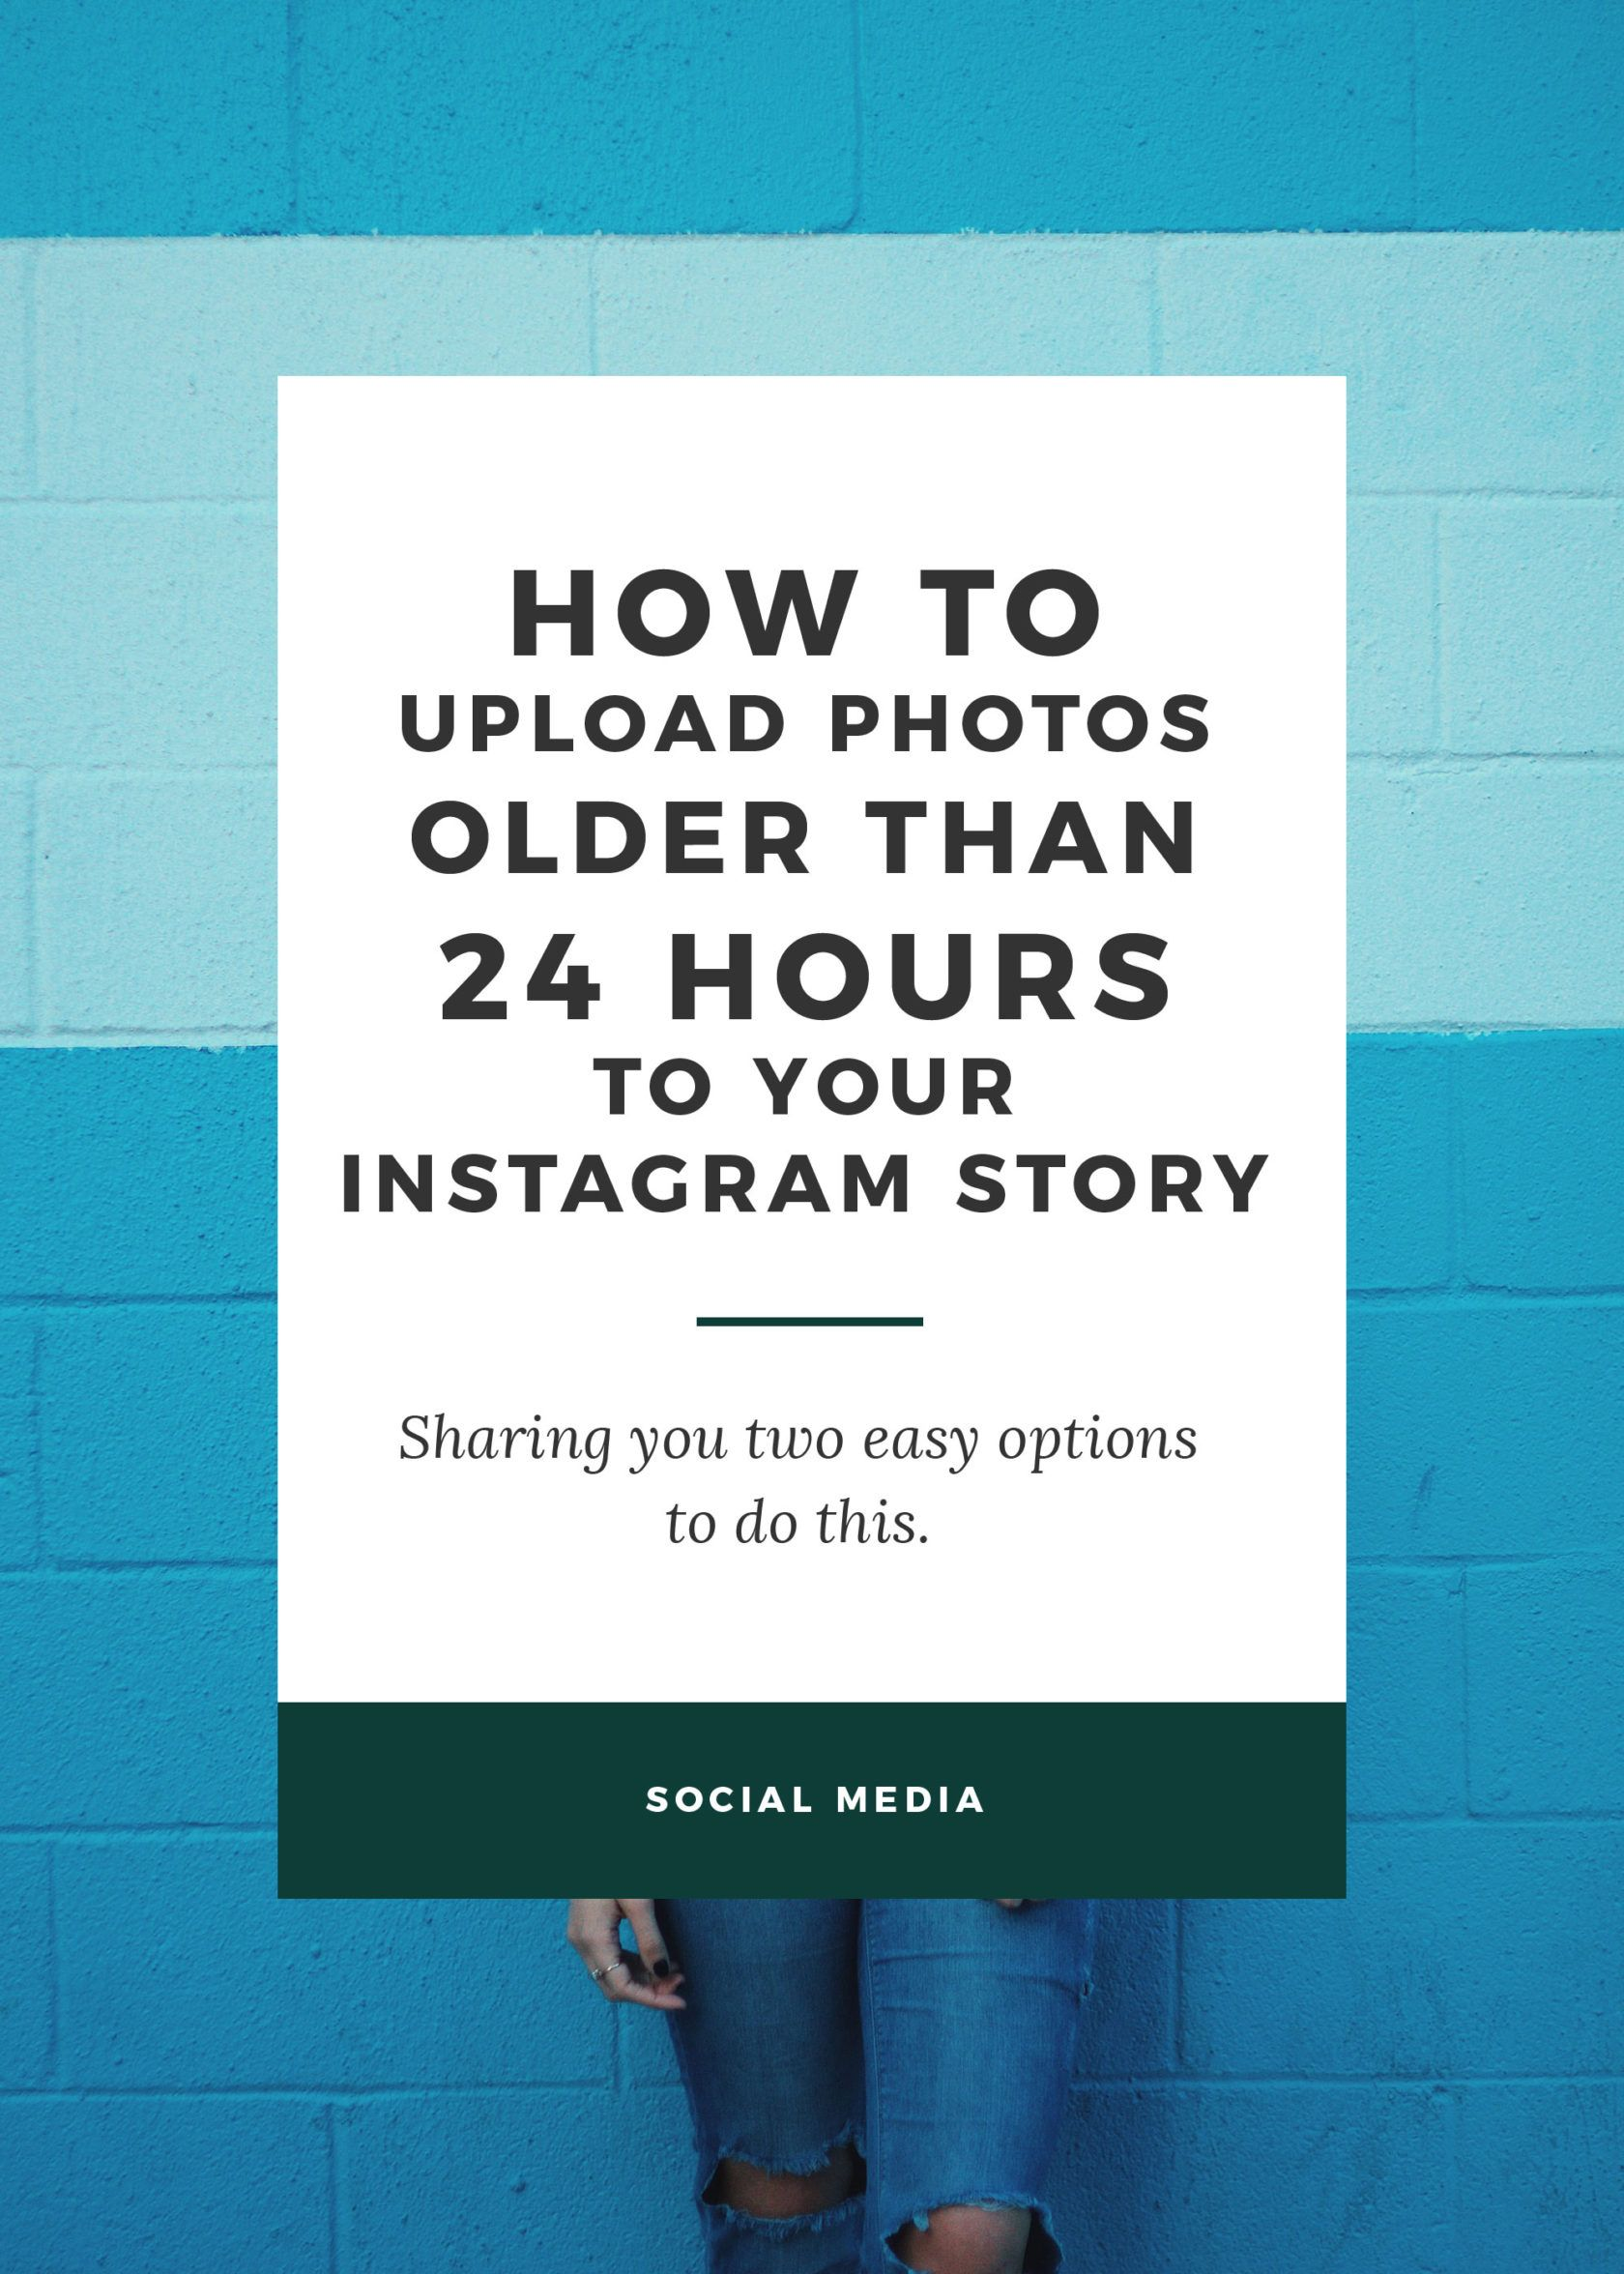 How to upload photos older than 24 hours to your instagram